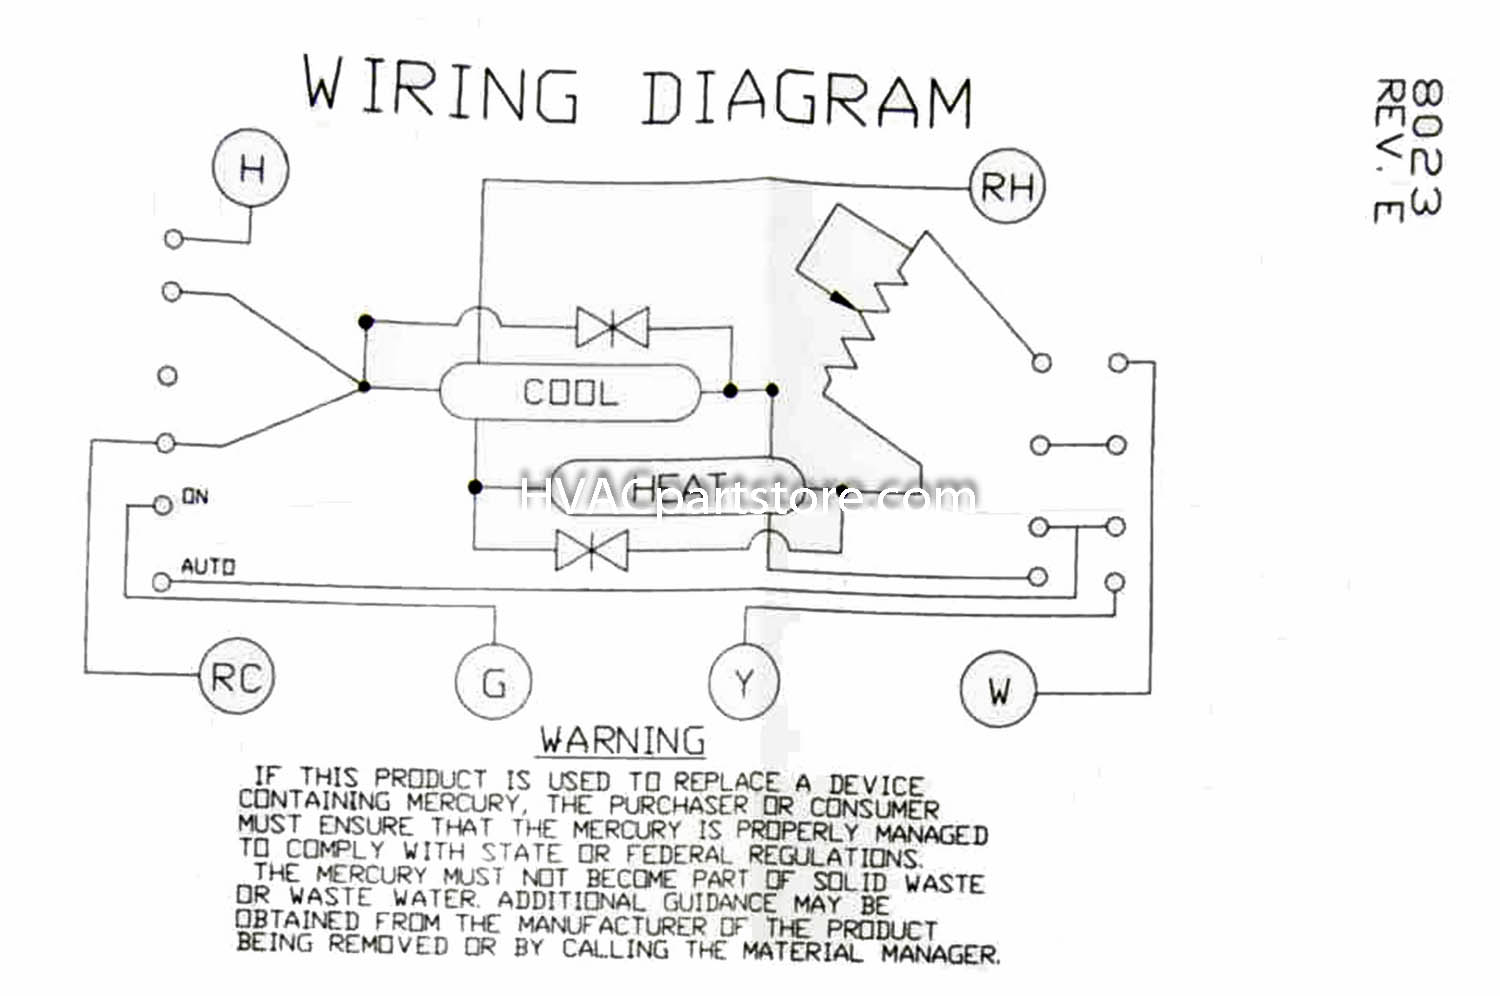 hight resolution of dometic three wire thermostat wiring diagram dometic get dometic digital thermostat wiring diagram dometic duo